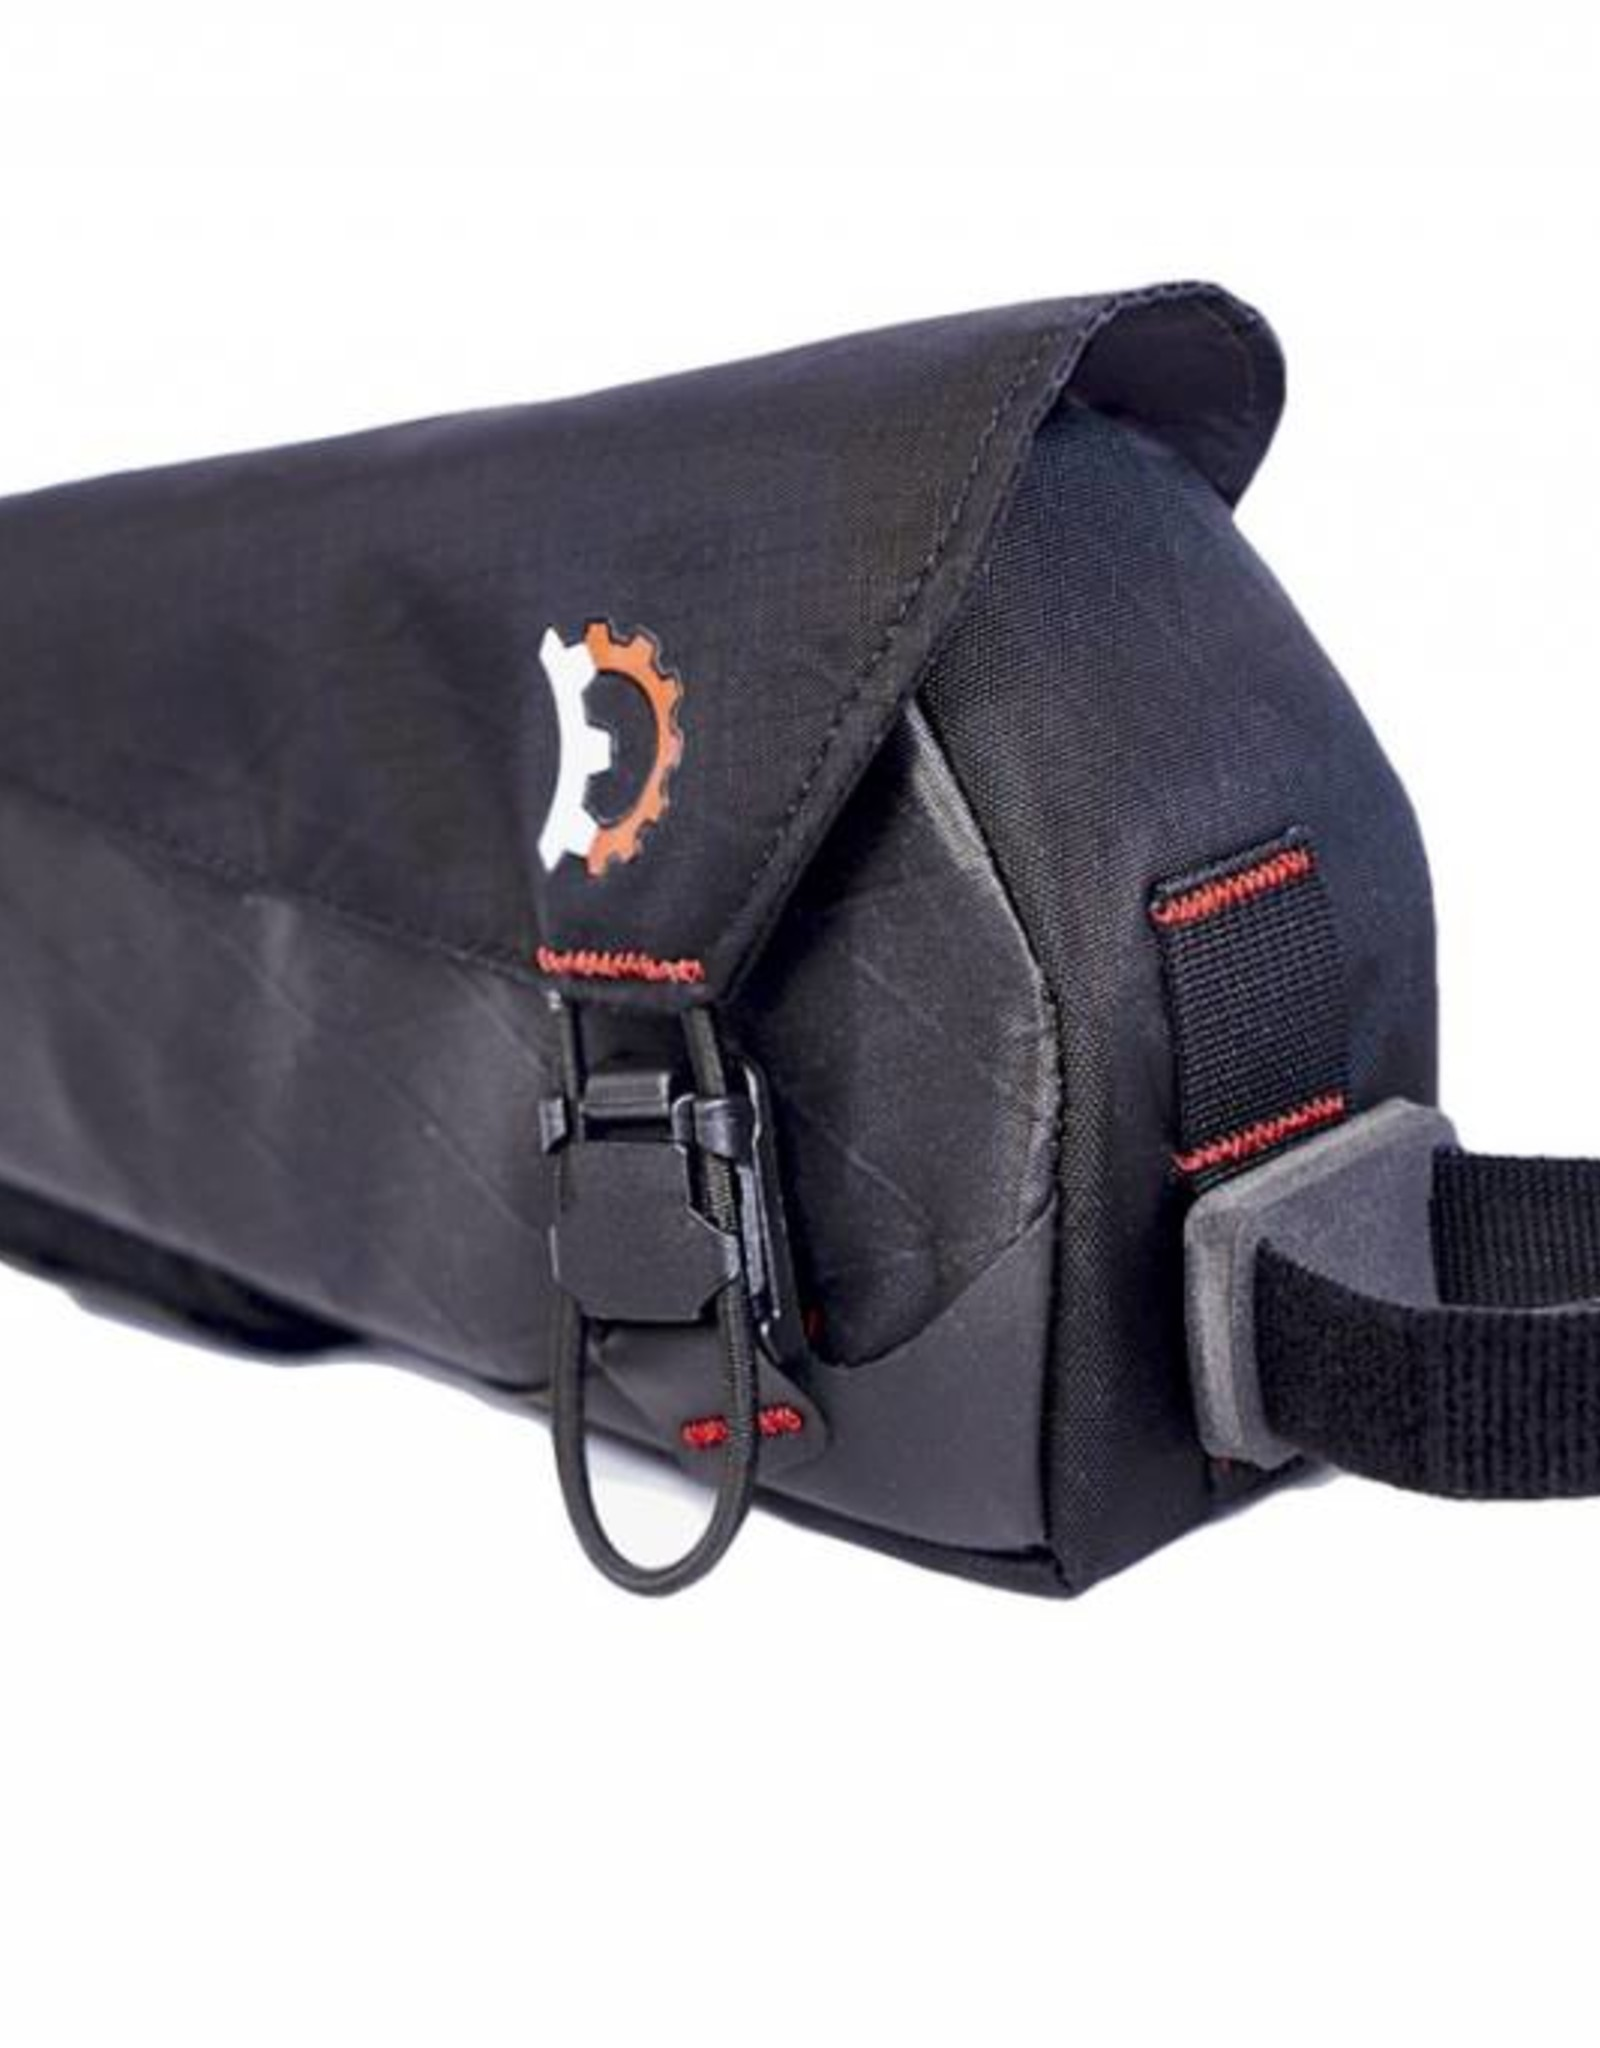 Revelate Designs Revelate Designs Mag-Tank Top Tube/Stem Bag, Black